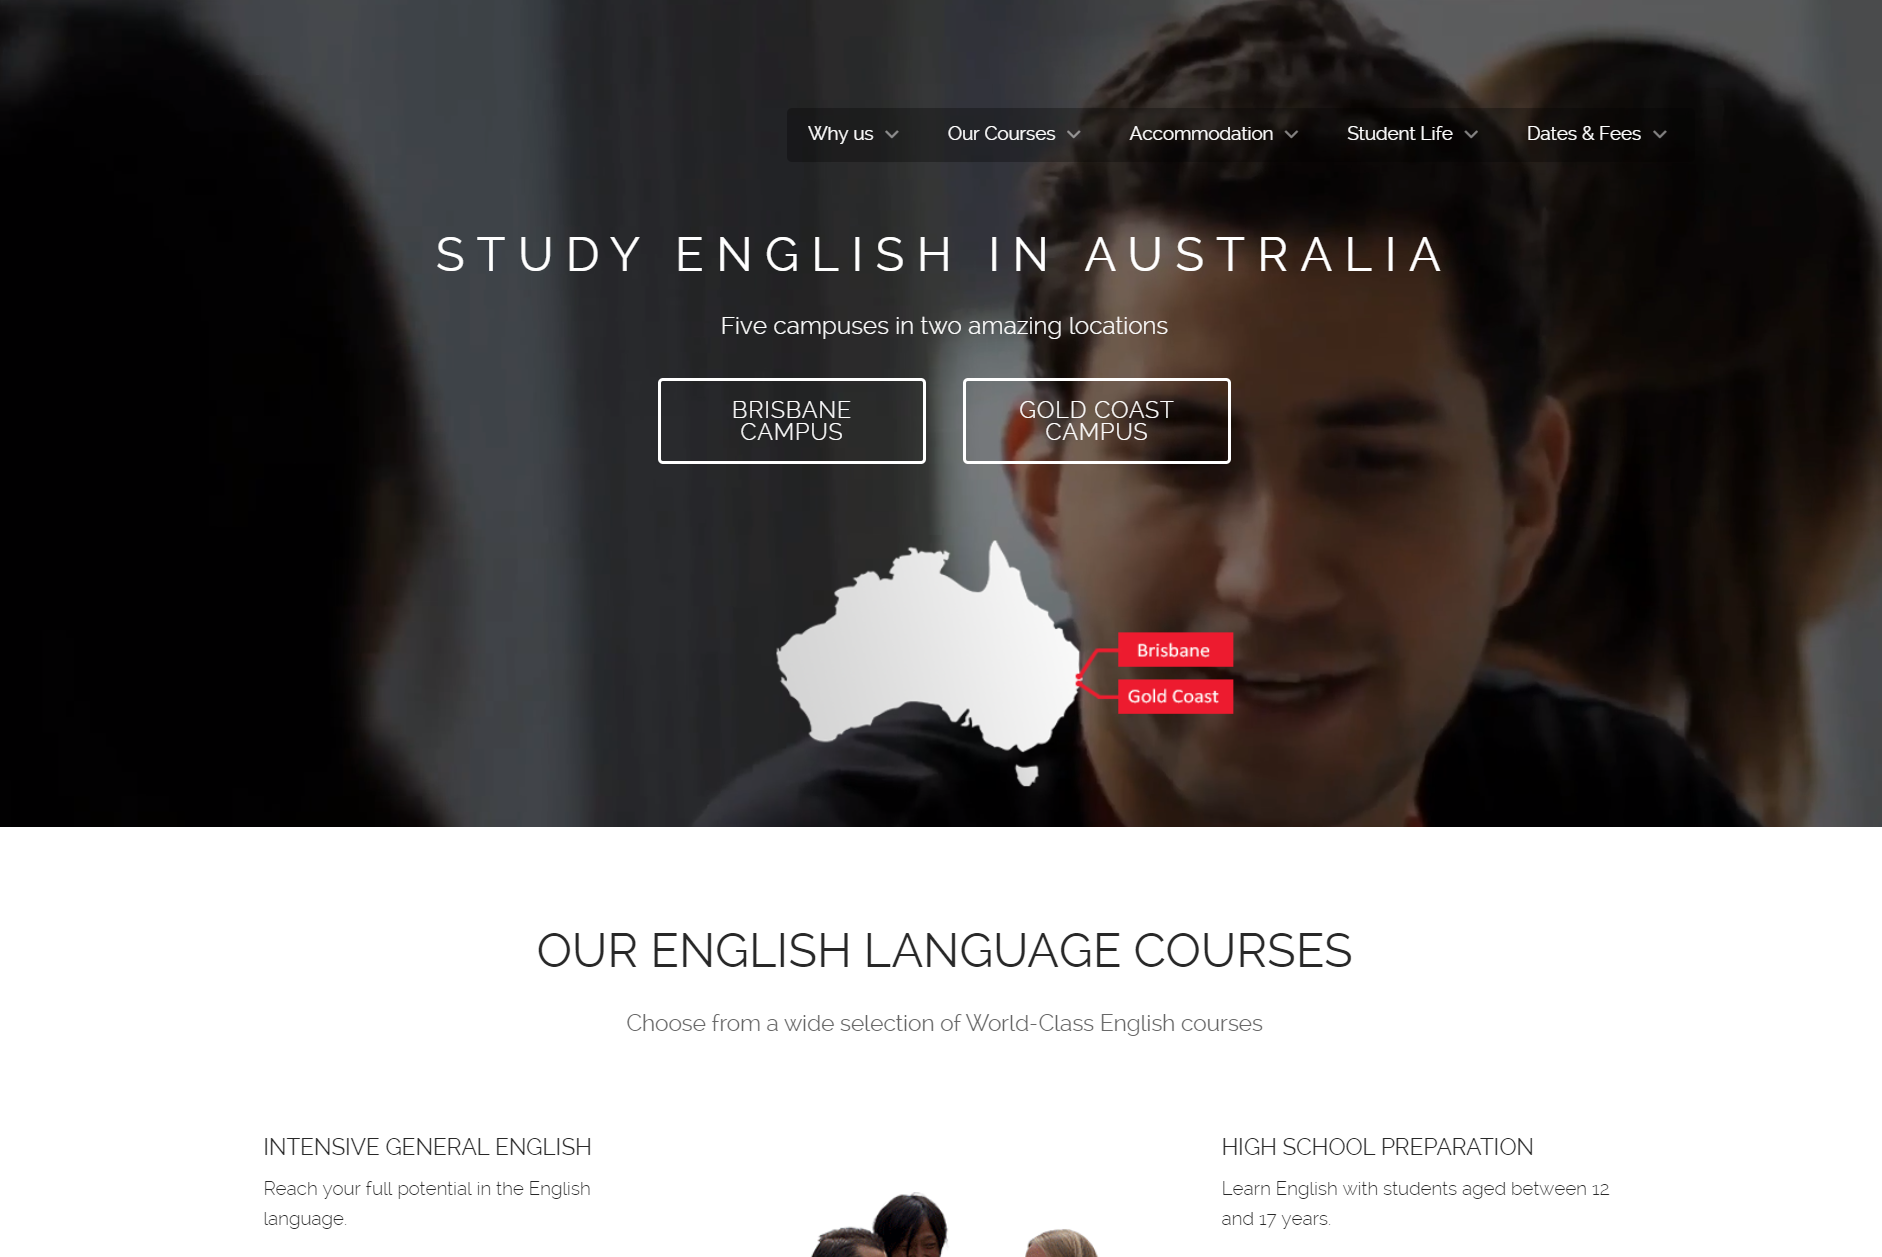 BROWNS English Language School (Brisbane Campus)